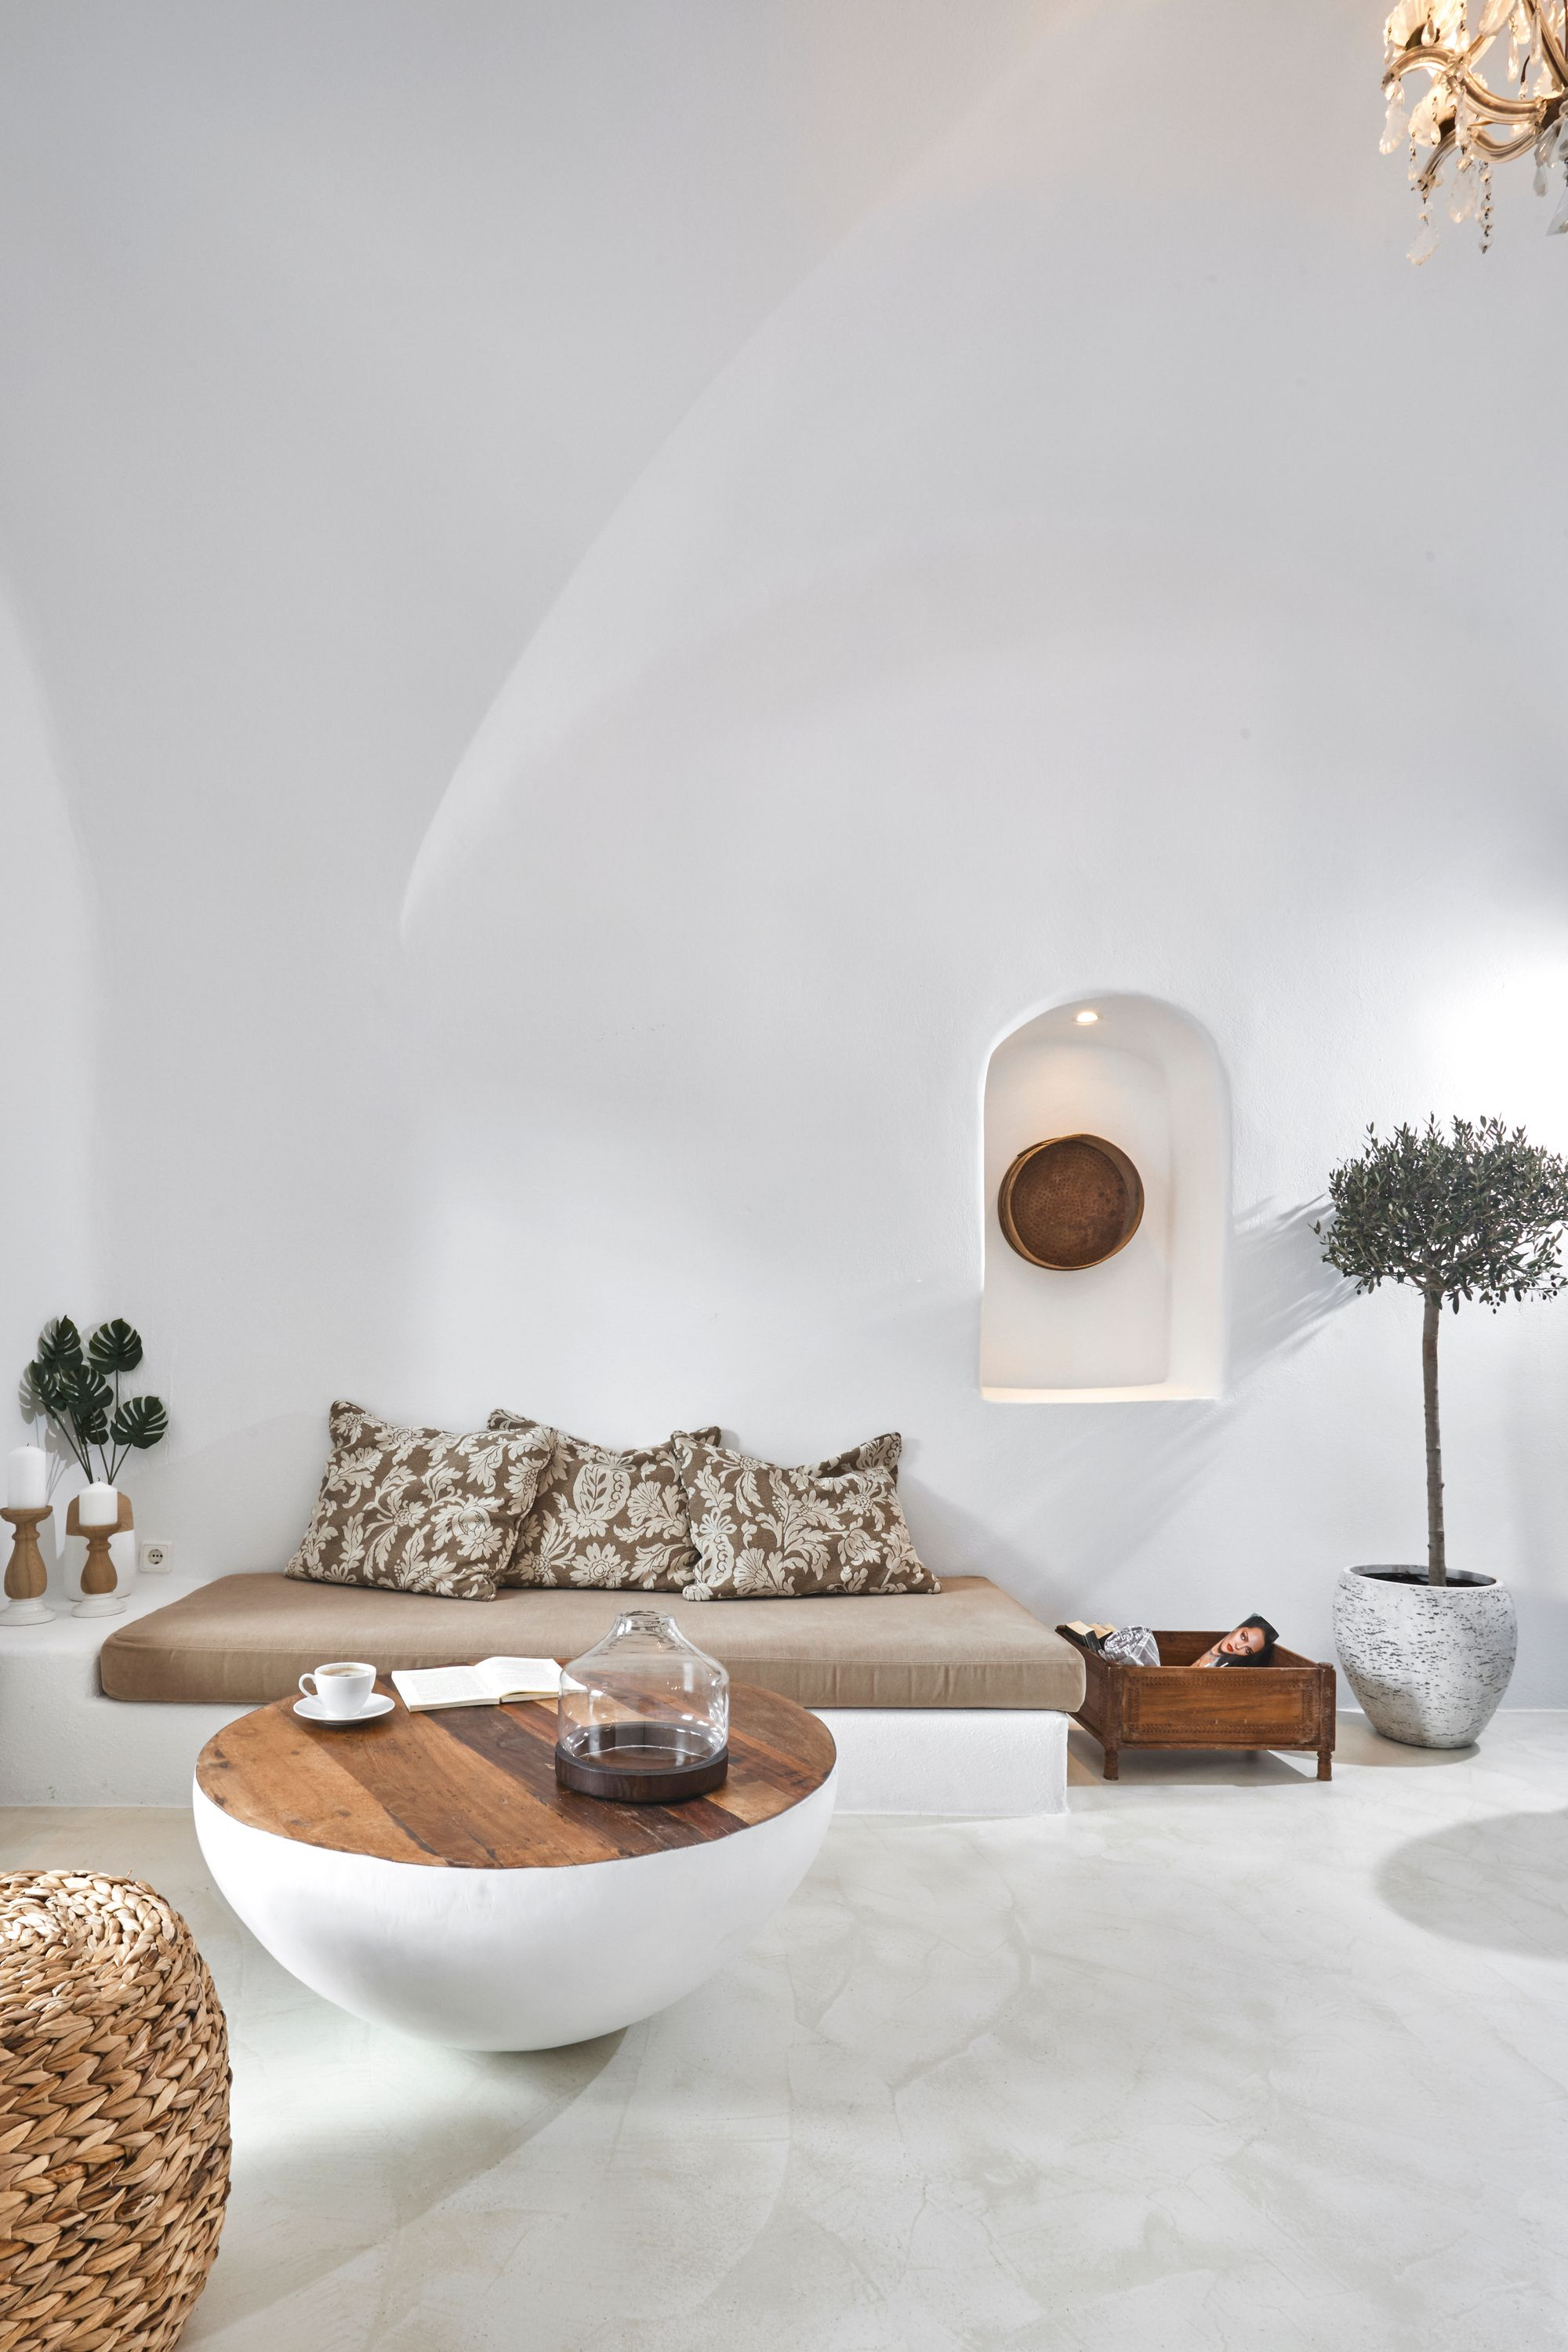 #cycladic #architecture #archilovers #architecturalstyle #interiordesign #decor livingroom #natural tones, #furnishing  #materials #cavehouse #builtinsofa #organicform #traditionmediterranean interiorstyling #dome #moderninterior #privatevilla #travel #inspiration #santorini   #interiordesign #interiors #decor #santorini #santorinivenue  #lovegreece #architecture #architecturelovers #archilovers #design #designer #photography #building #buildings #urban #beautiful #vacations #santoriniholidays